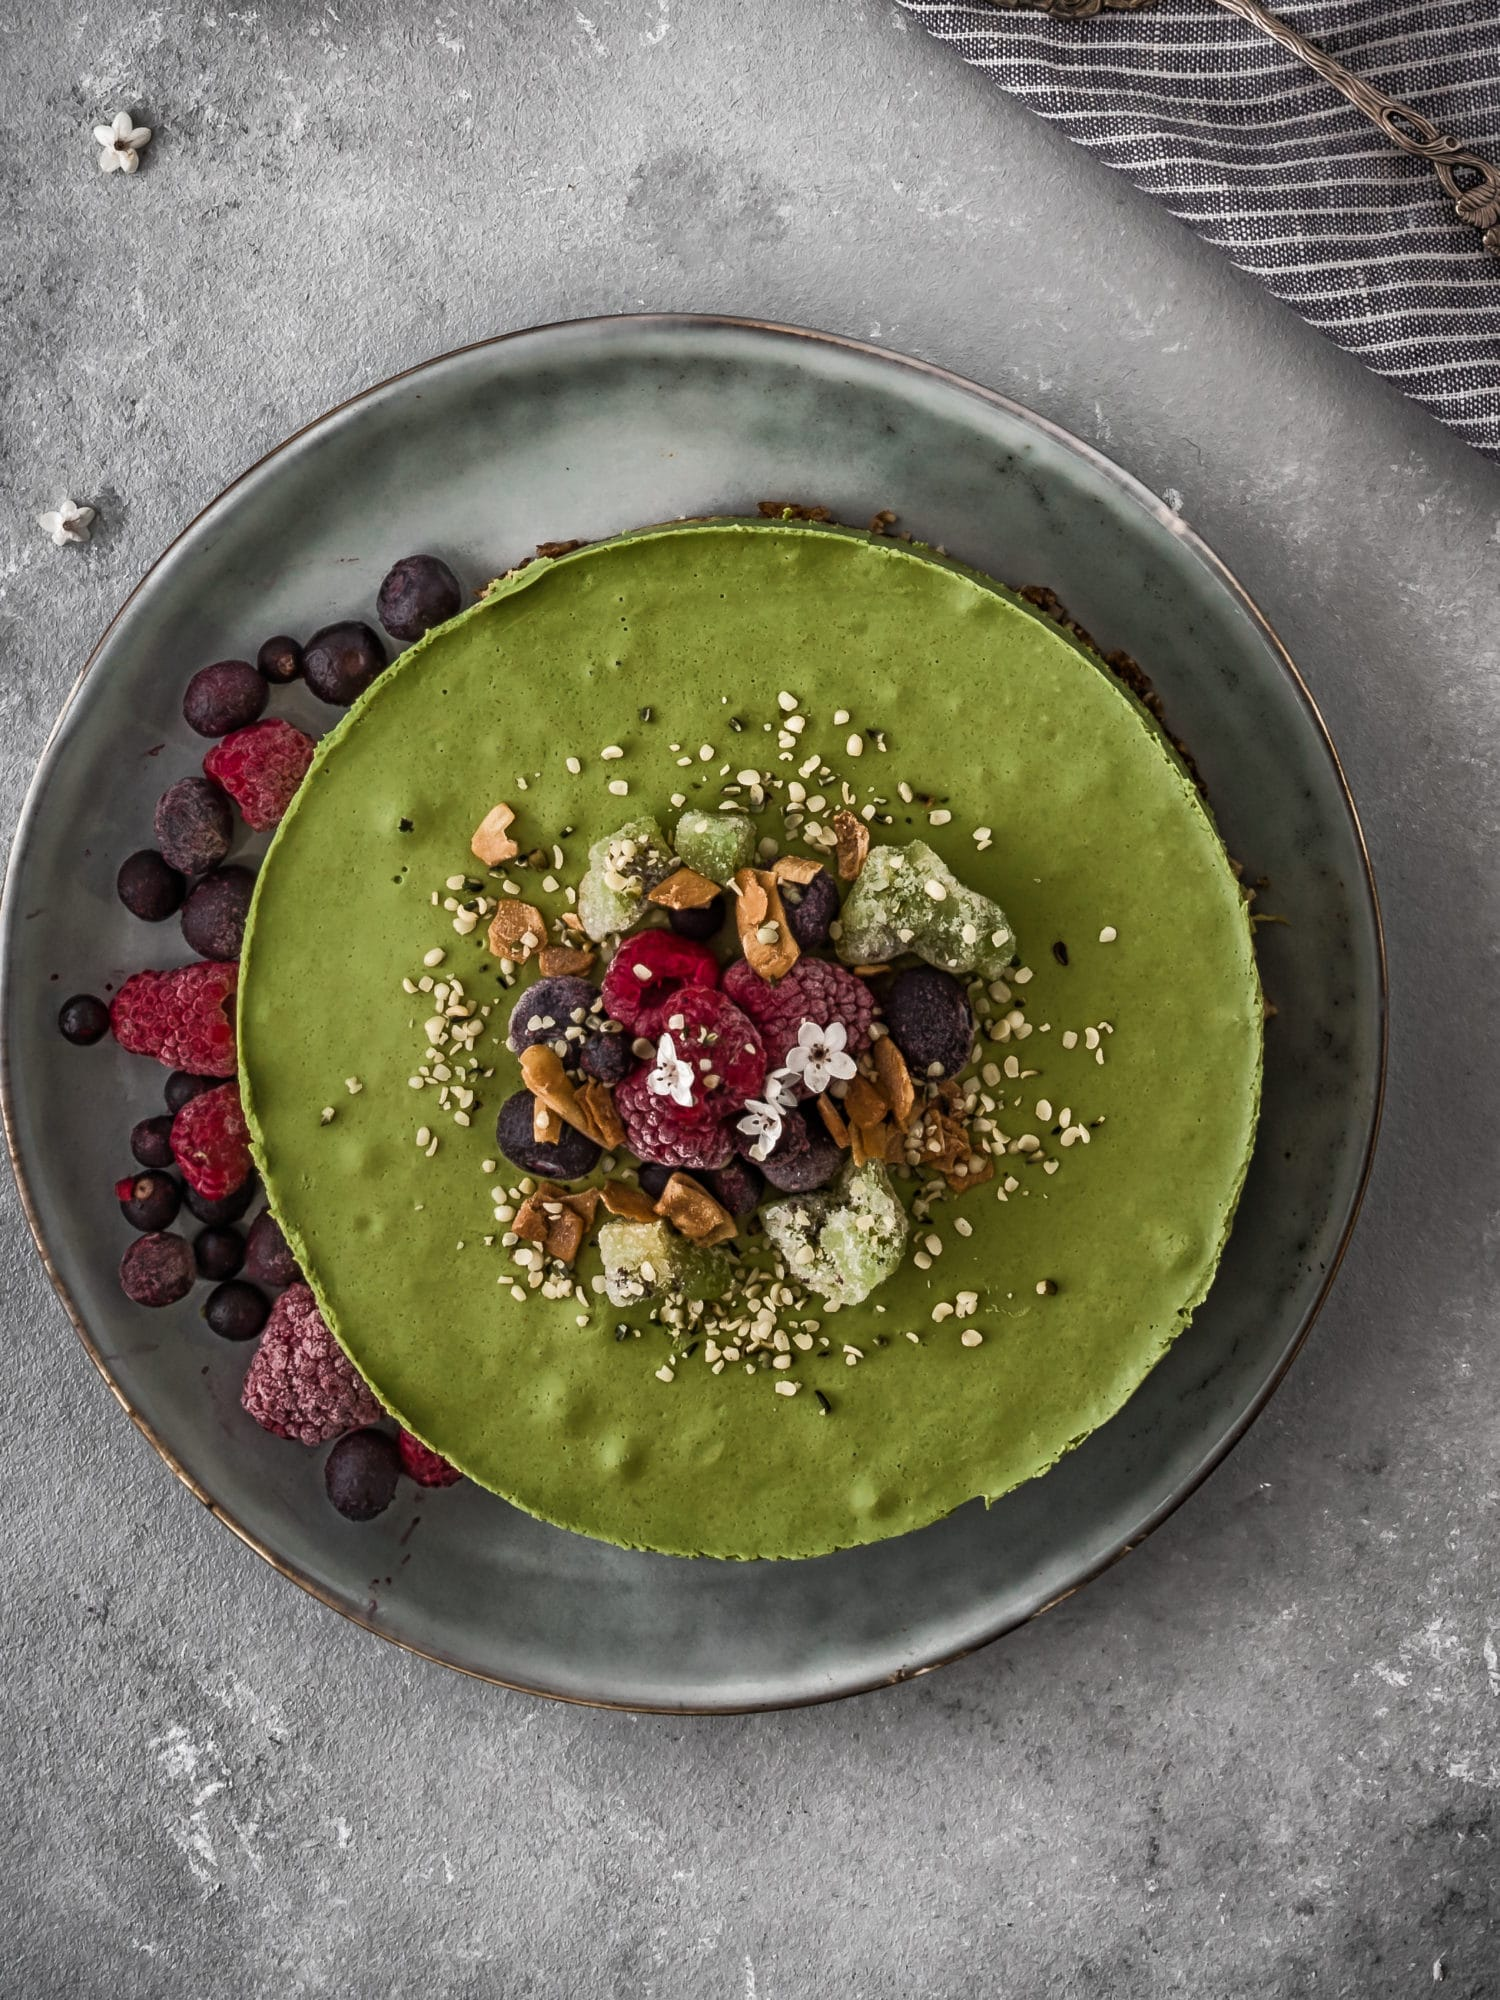 Weizengras Green Smoothie Rawcake